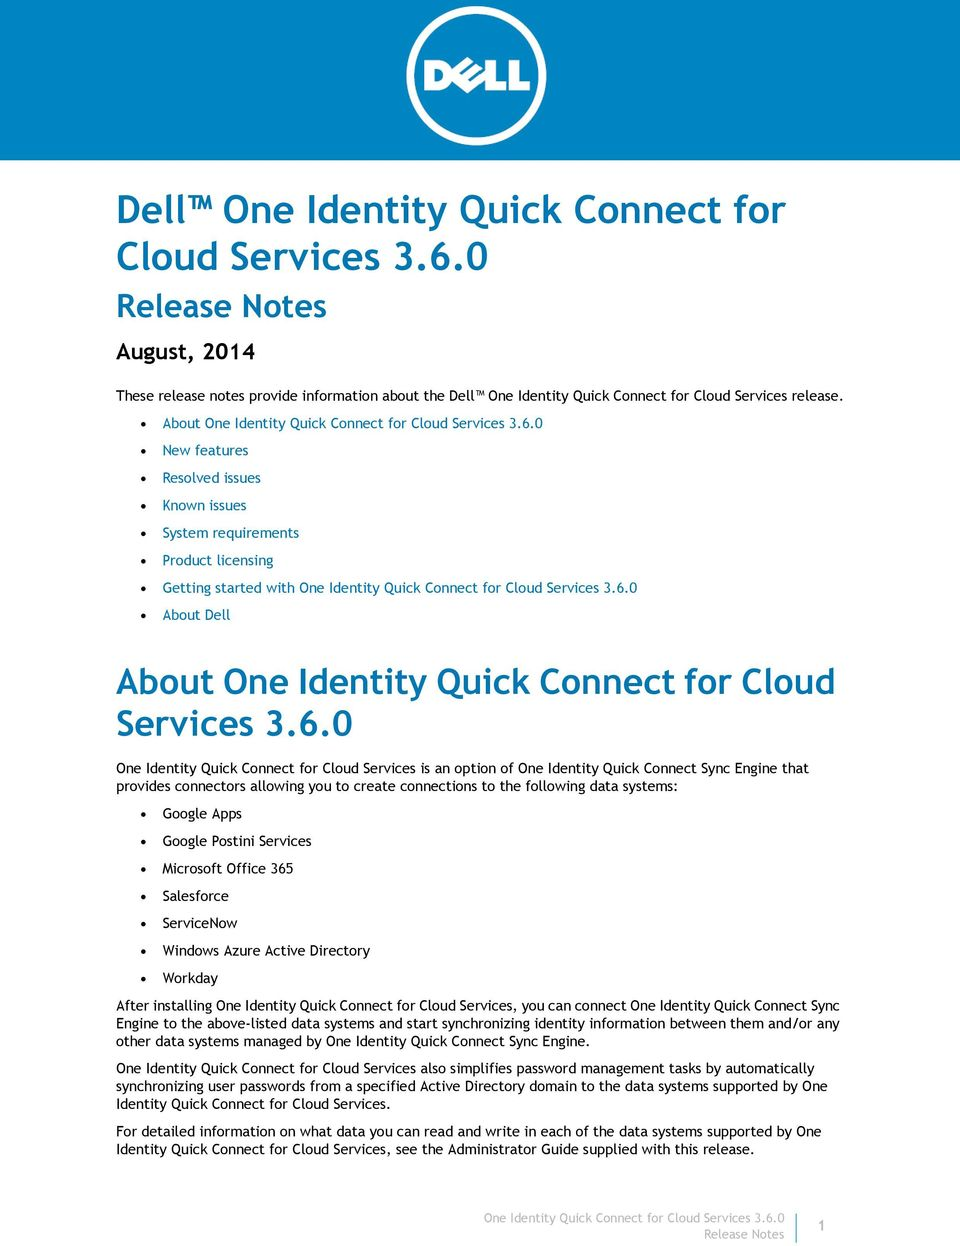 0 One Identity Quick Connect for Cloud Services is an option of One Identity Quick Connect Sync Engine that provides connectors allowing you to create connections to the following data systems: